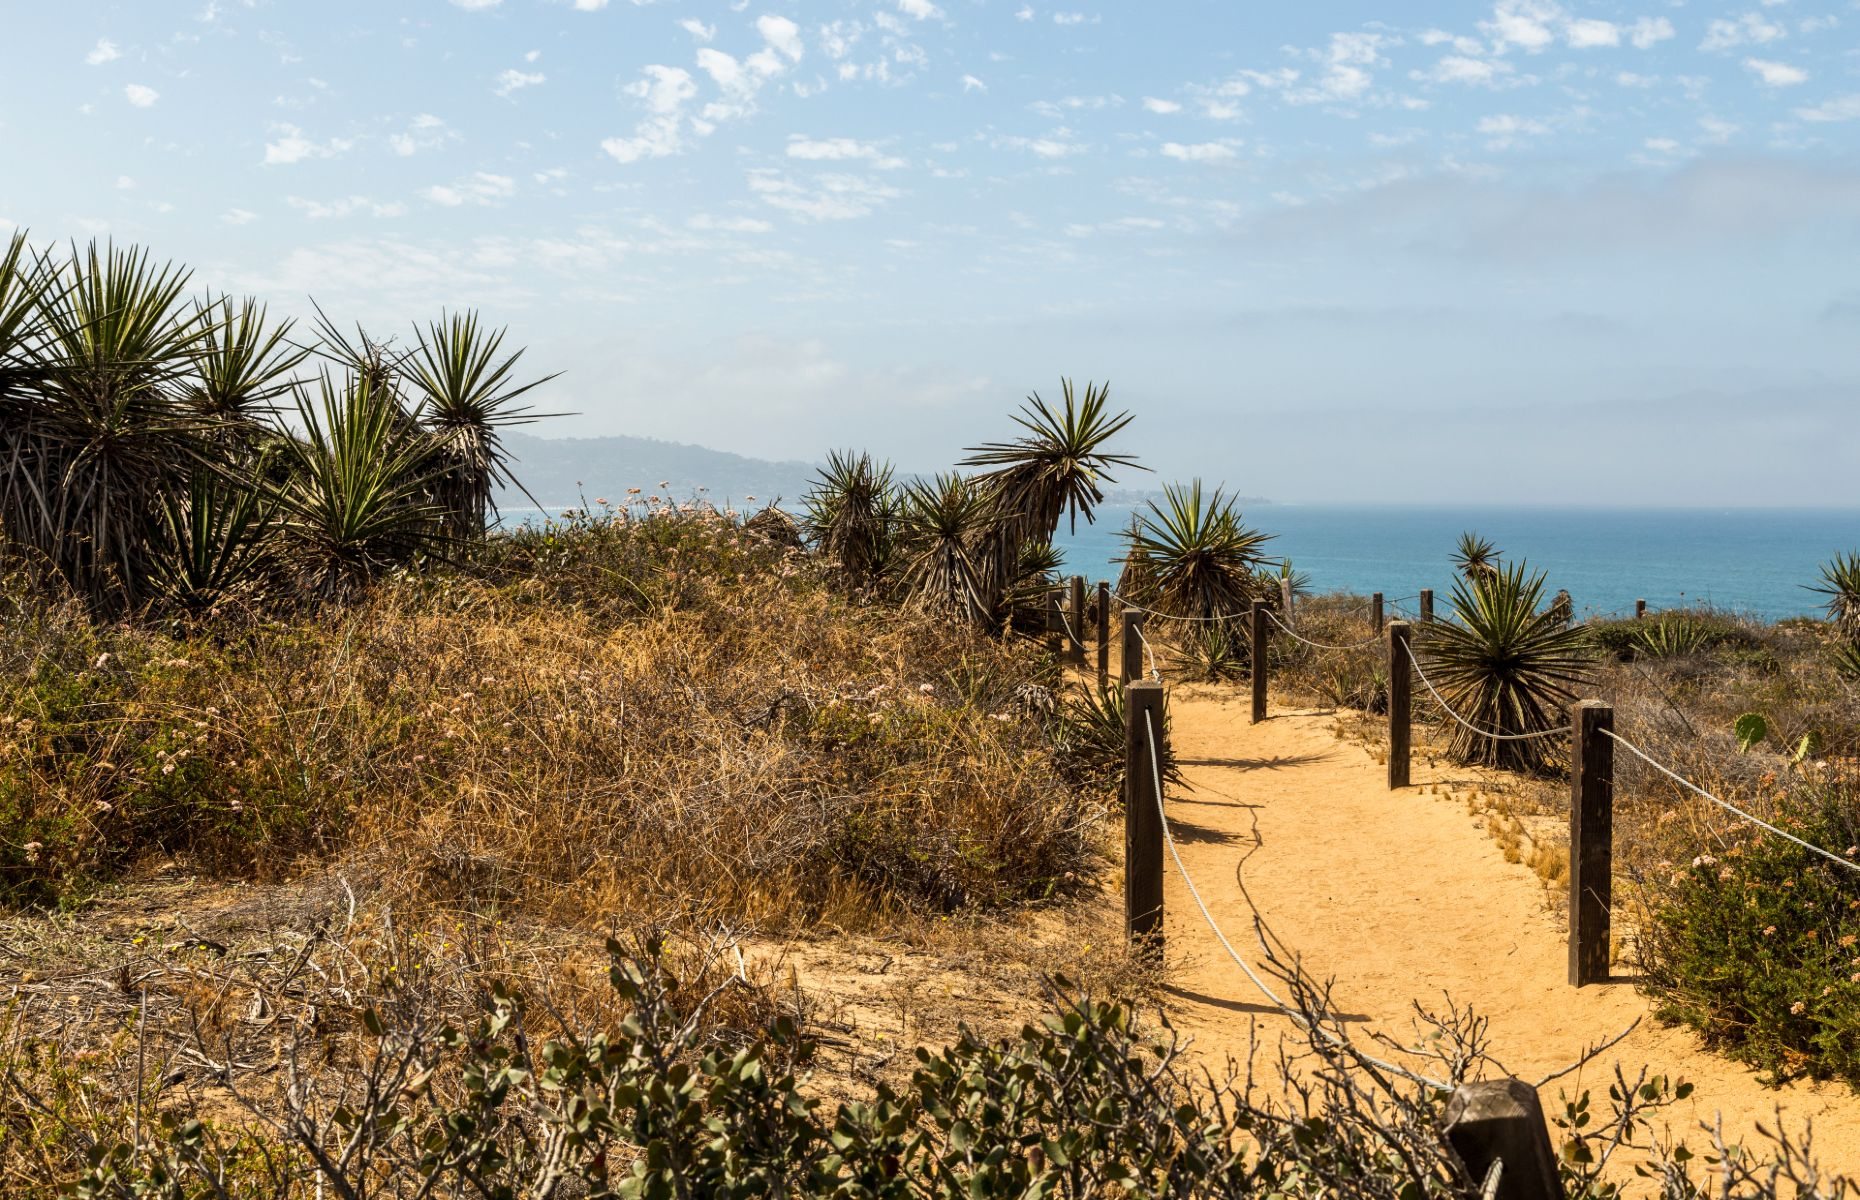 Torrey Pines State Natural Reserve (Image: ZAB Photographie/Shutterstock)